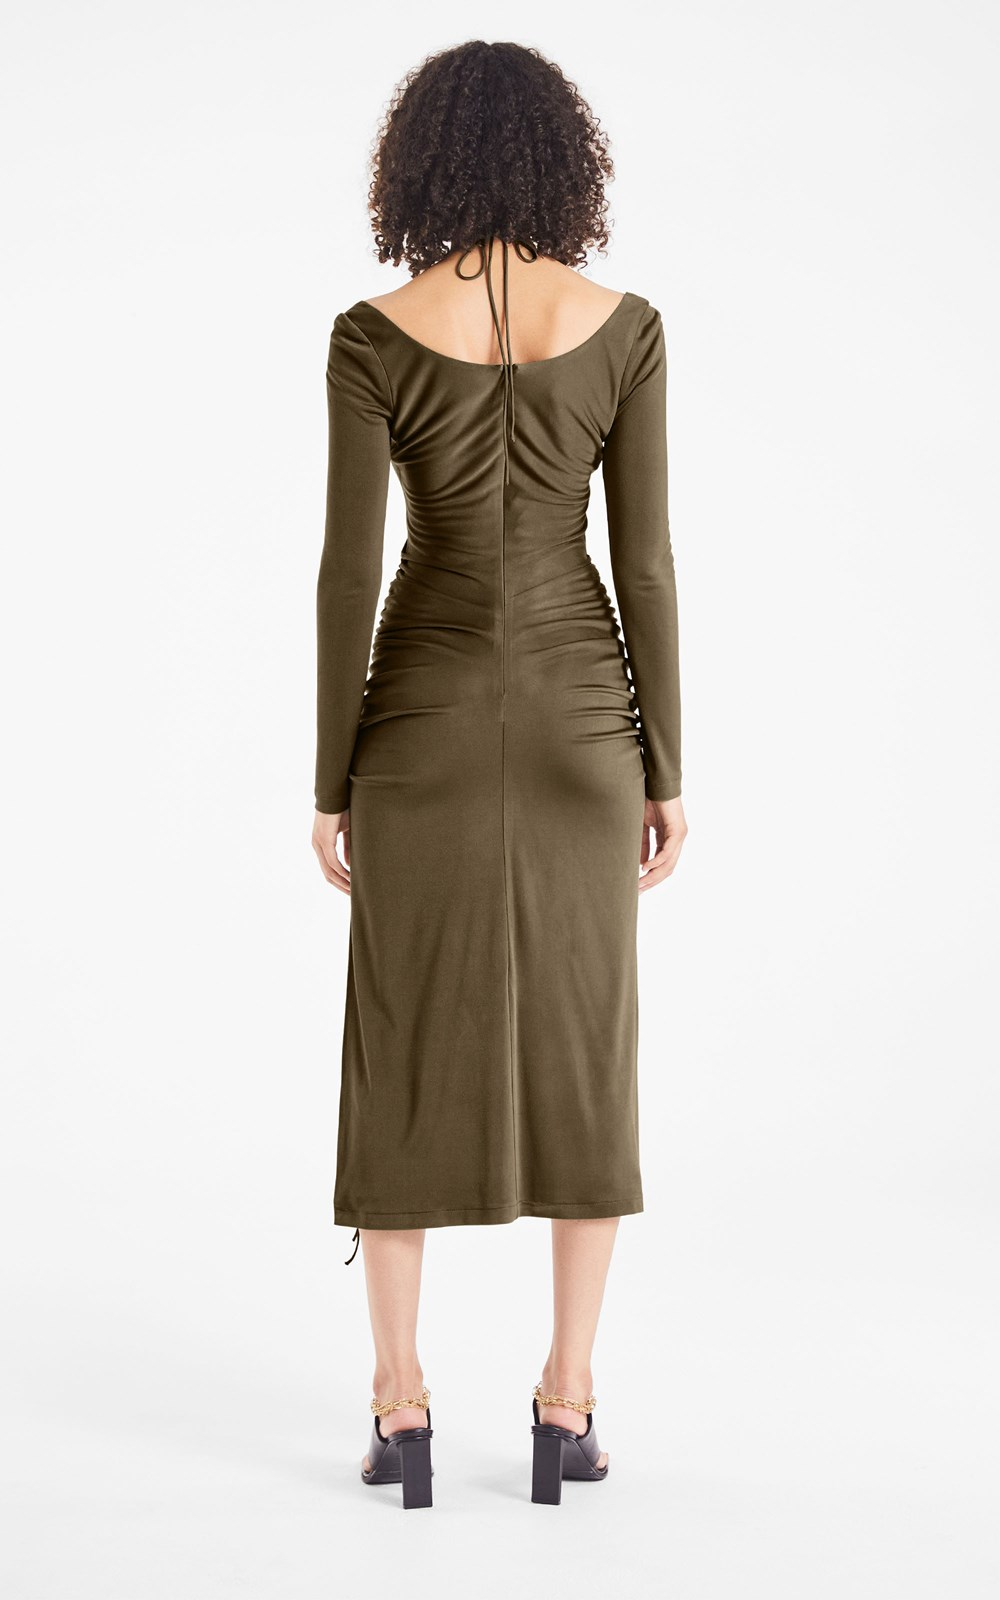 Dresses  | SILK JERSEY WIRE DRESS